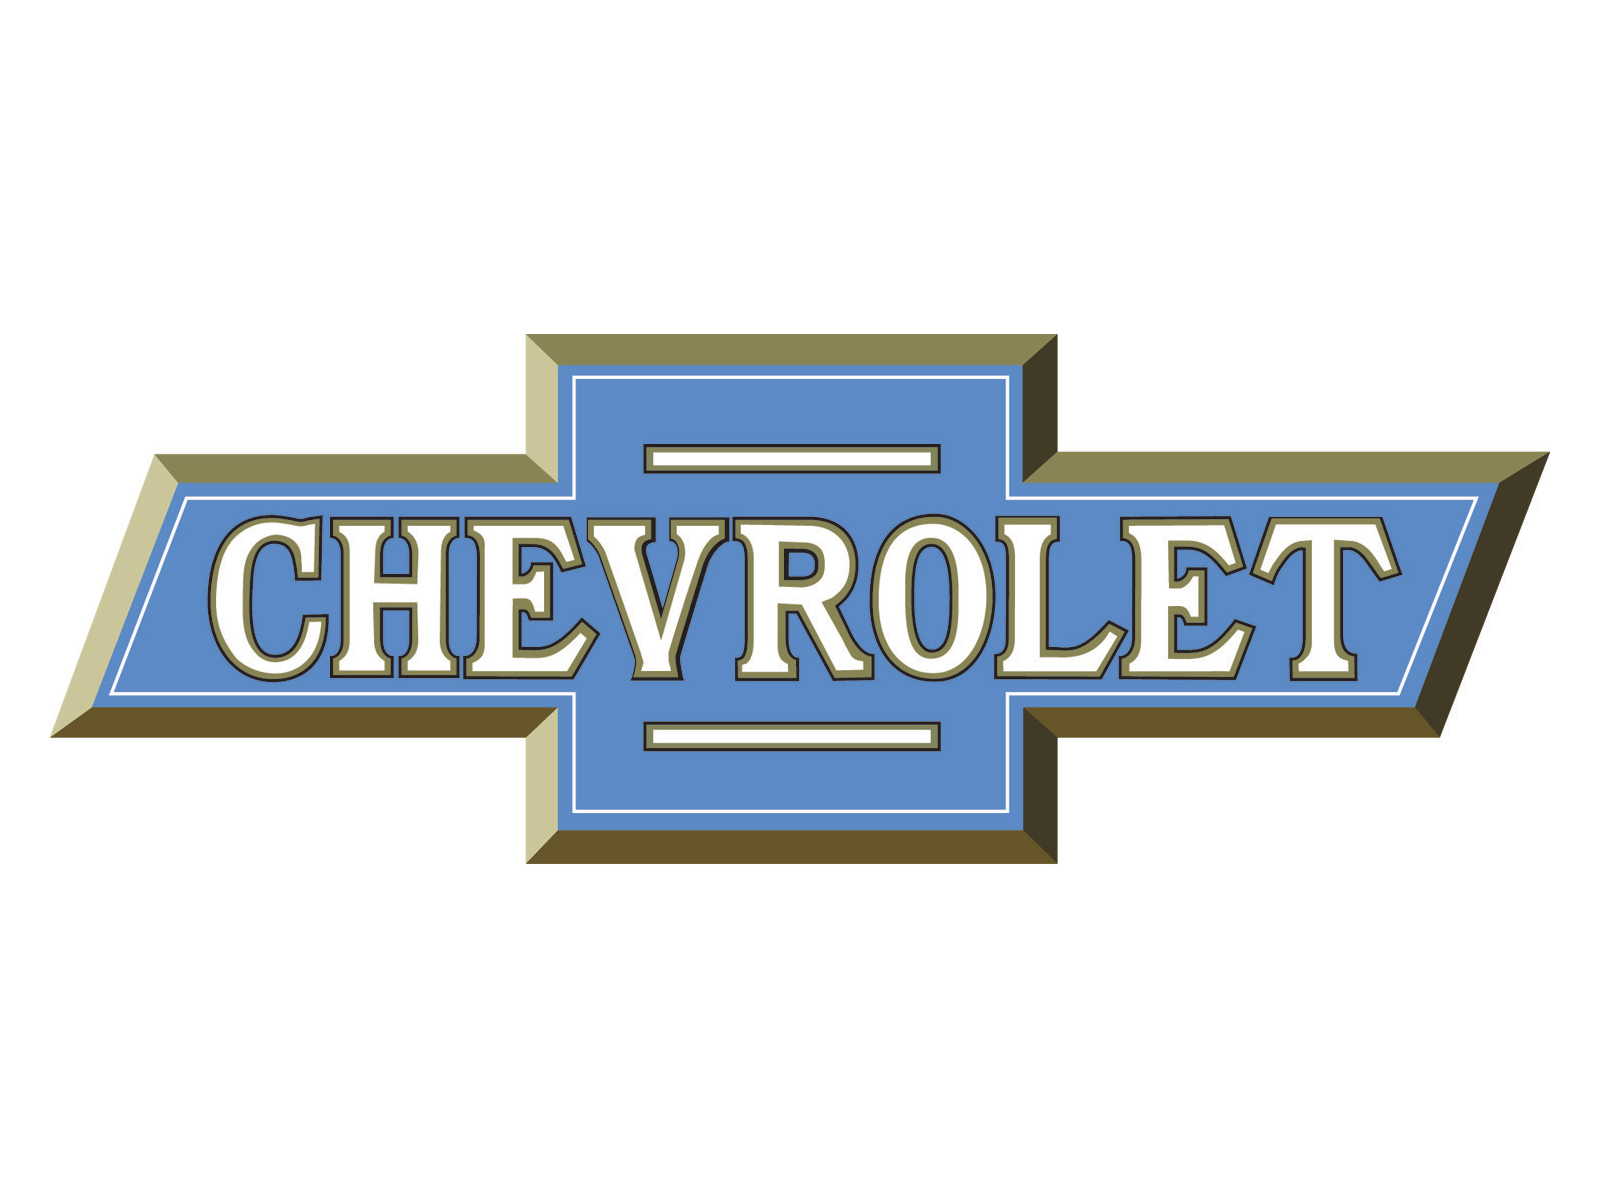 Chevy Logo, Chevrolet Car Symbol Meaning and History | Car Brand ...